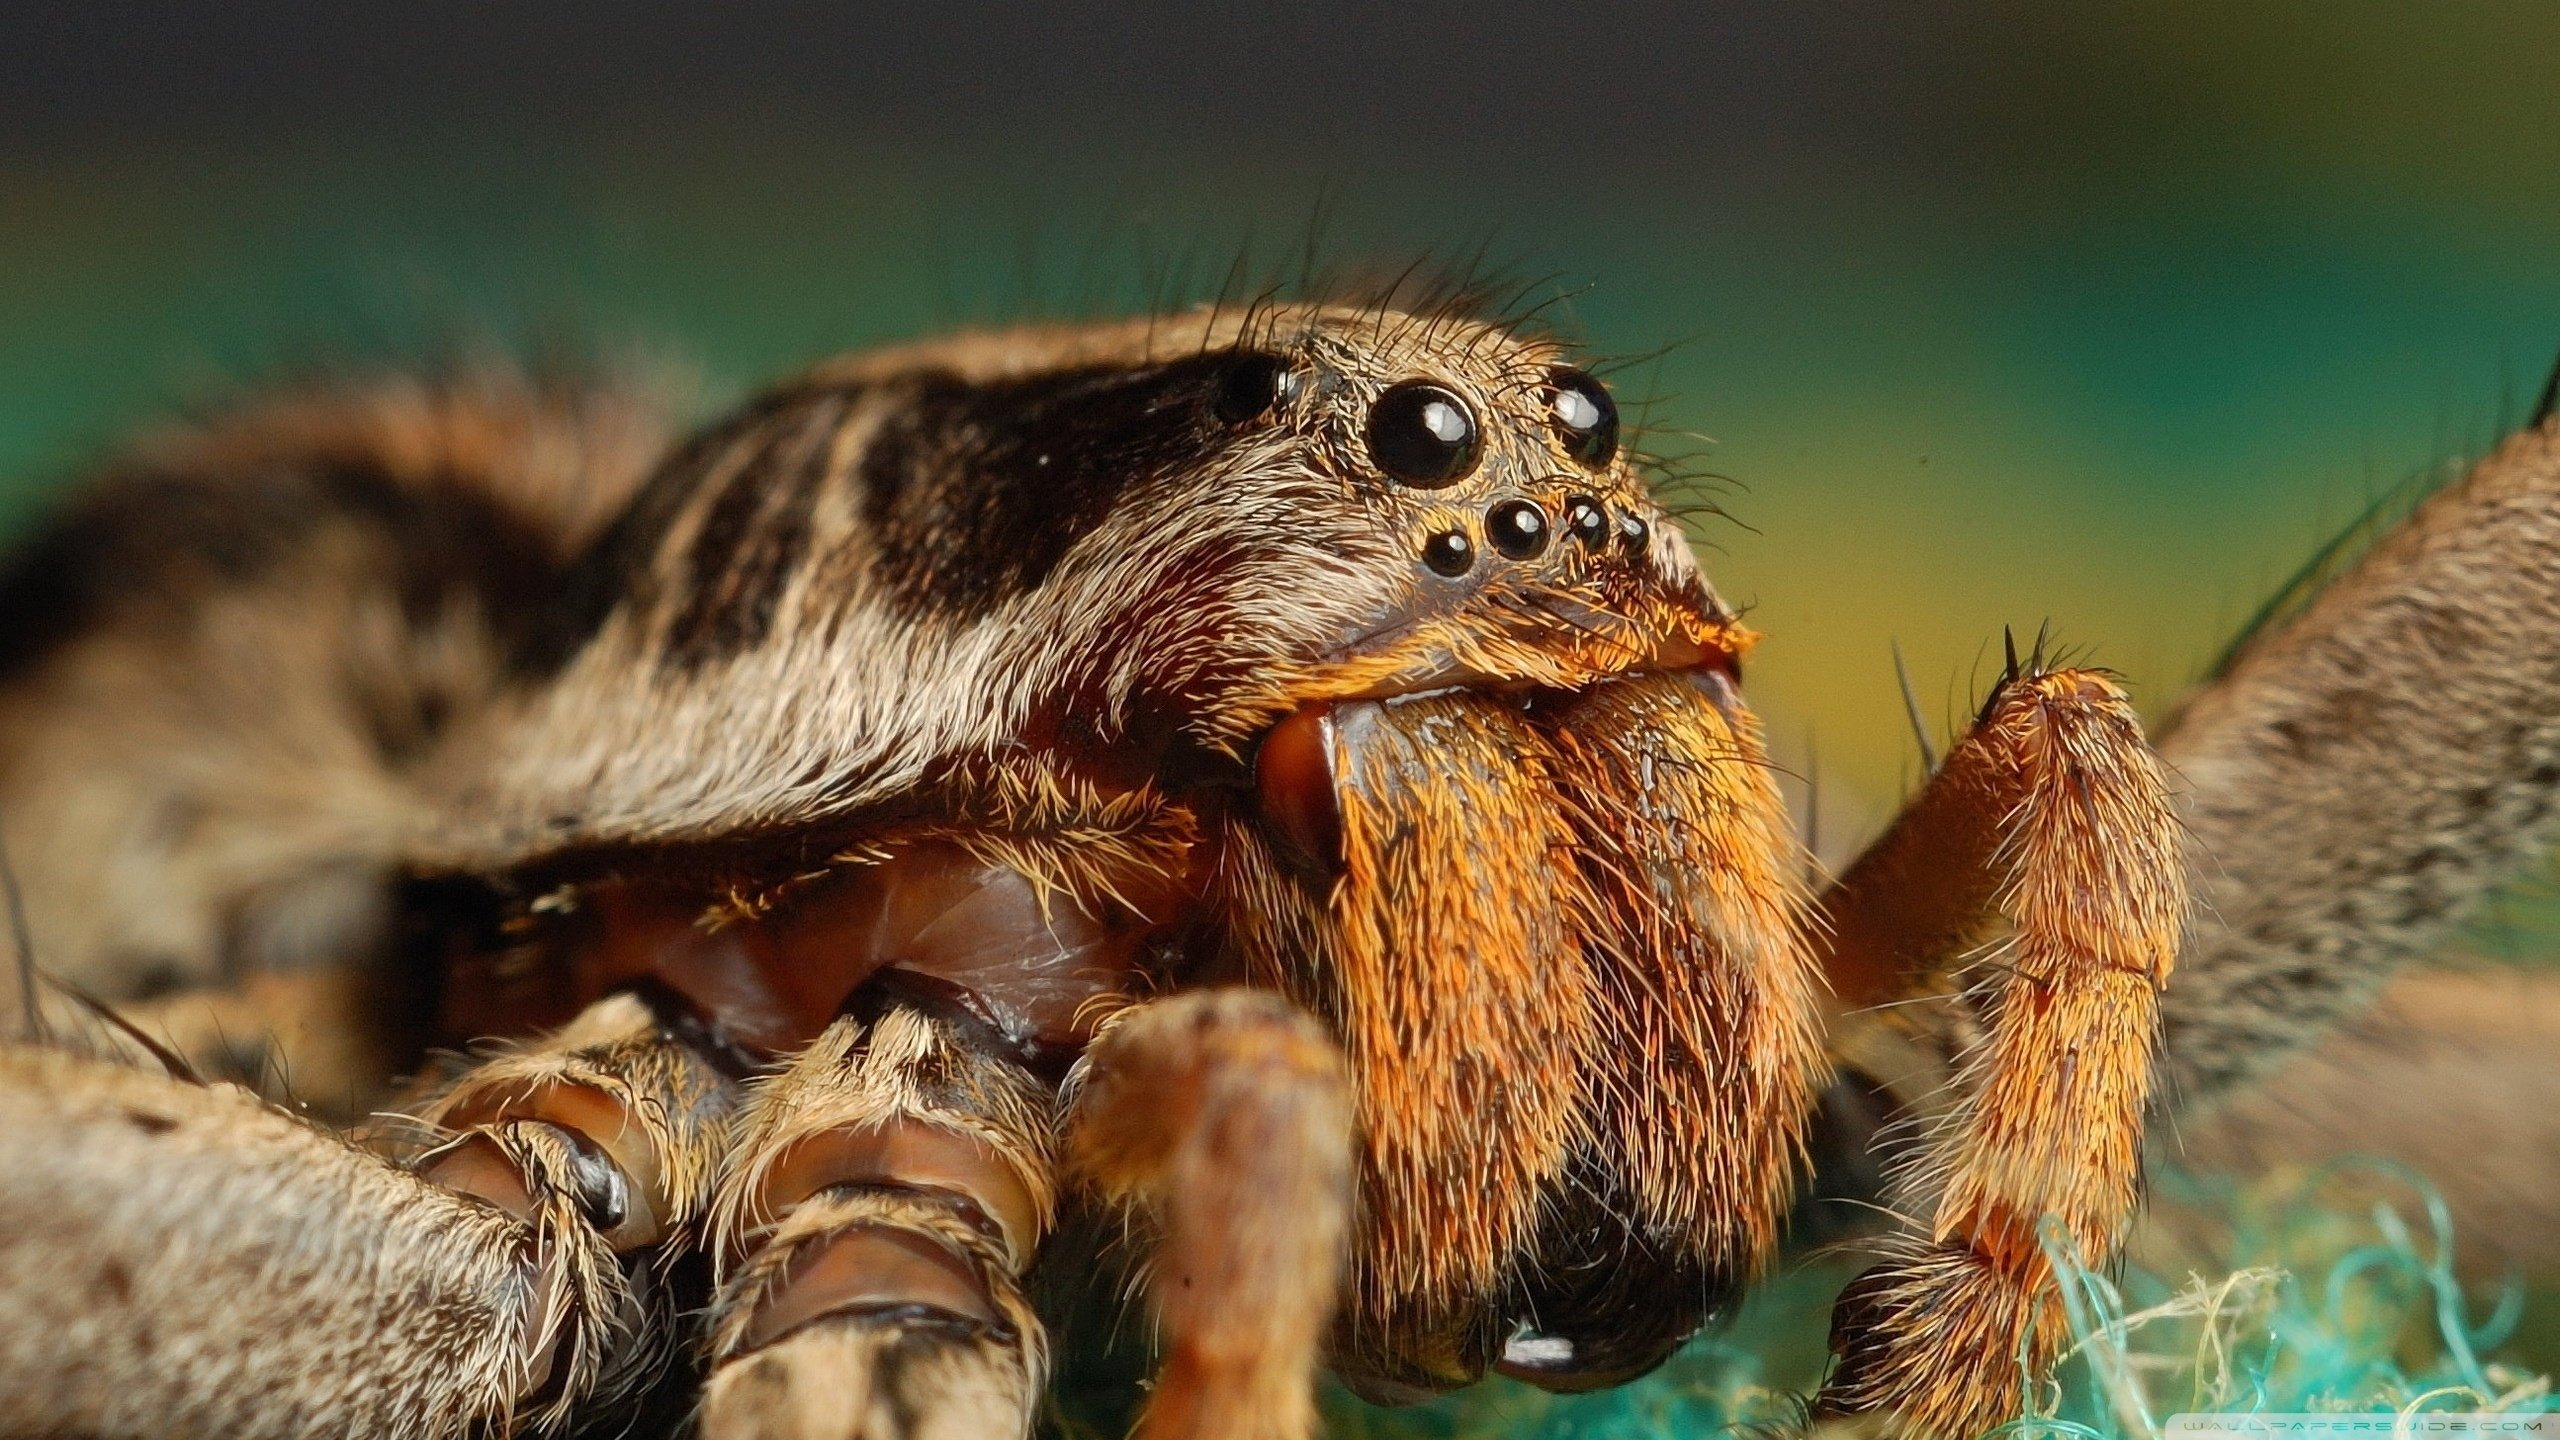 Best Tarantula wallpaper ID:409549 for High Resolution hd 2560x1440 desktop